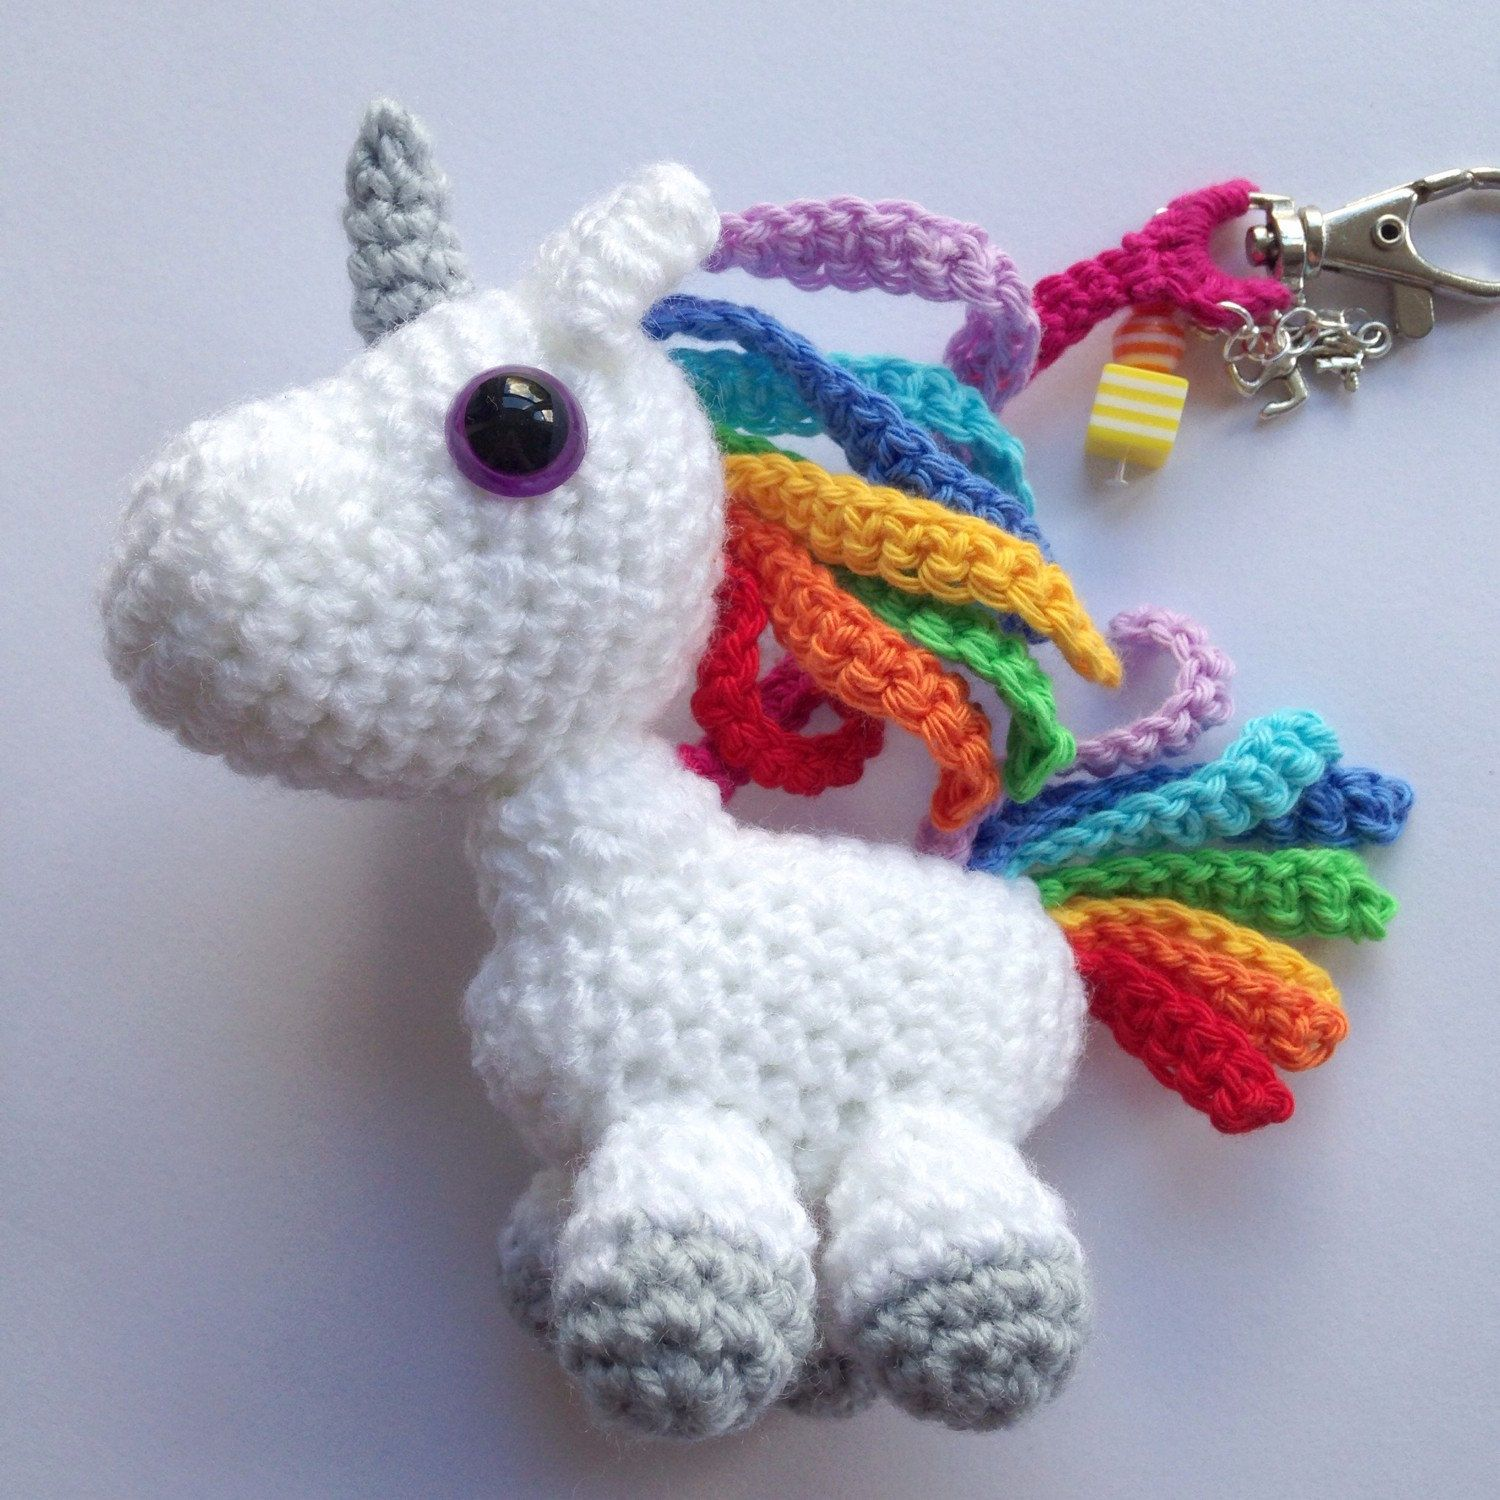 Lazy Rainbow Unicorn Amigurumi Pattern & Kit – Tiny Rabbit Hole by ... | 1500x1500